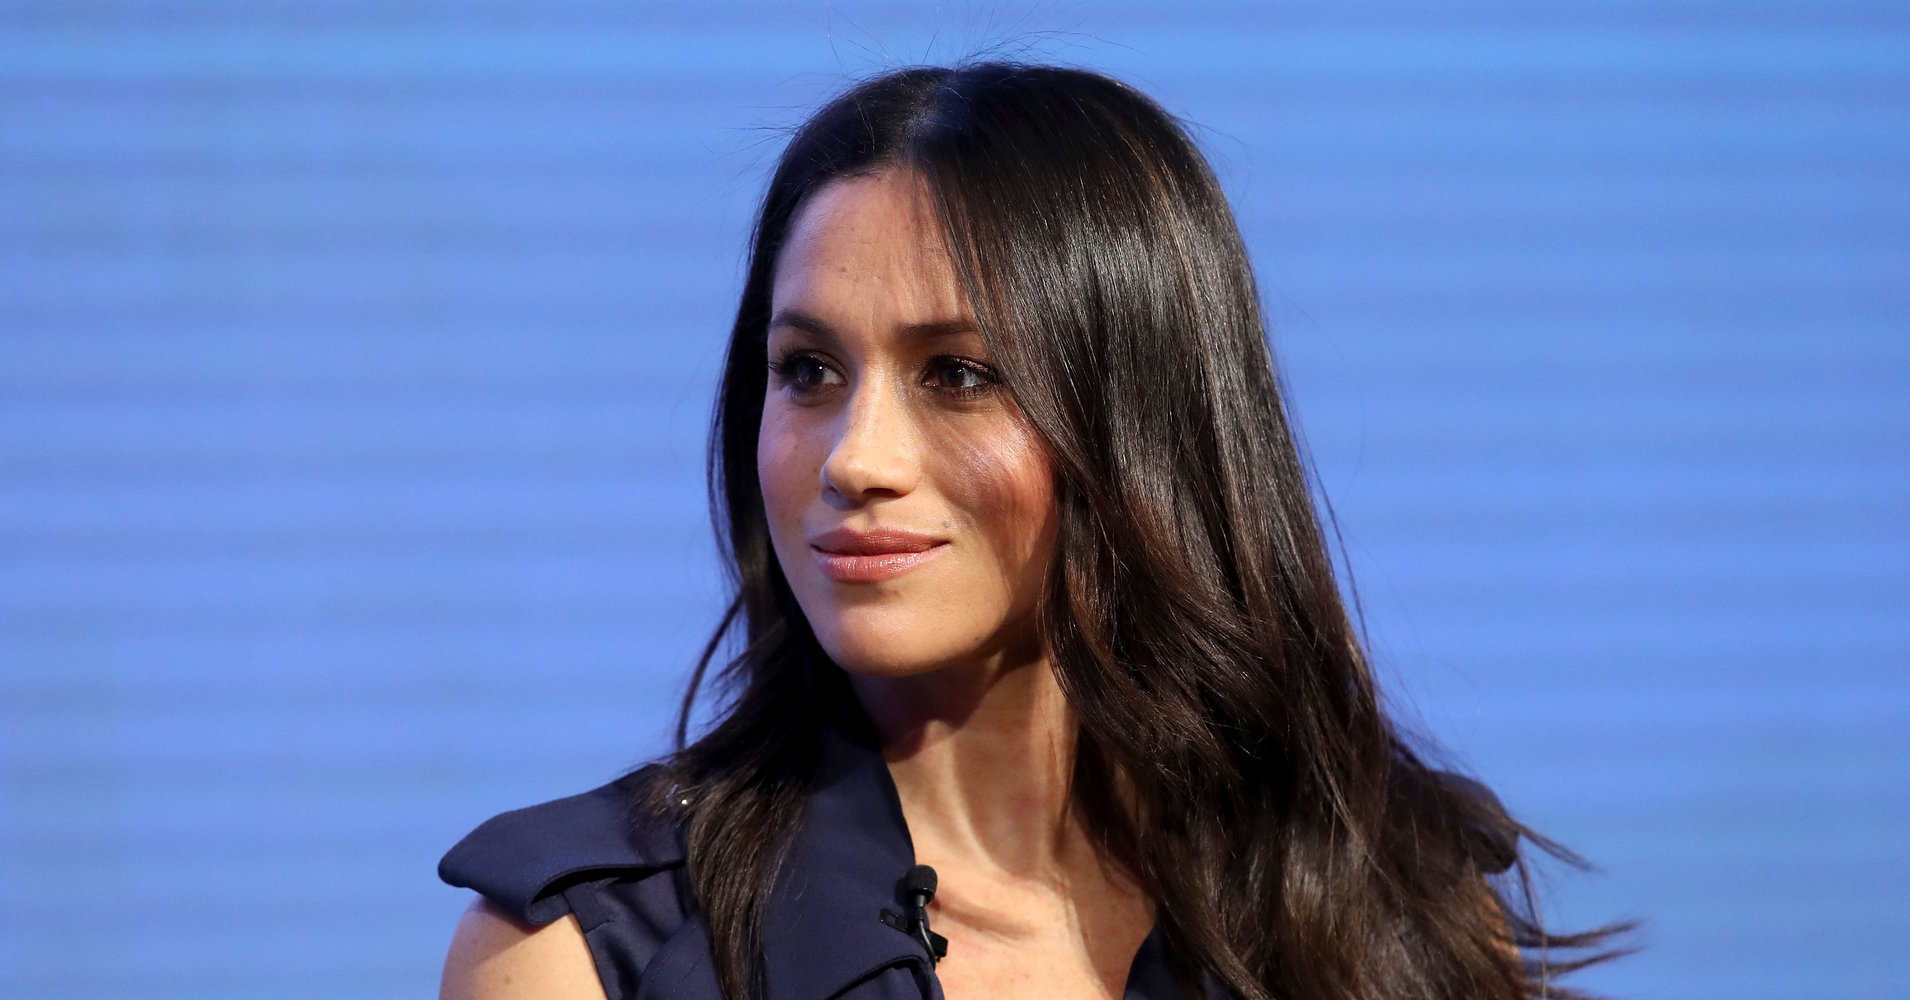 Meghan Markle Has Strong Words For Me Too And Time's Up At Royal Event